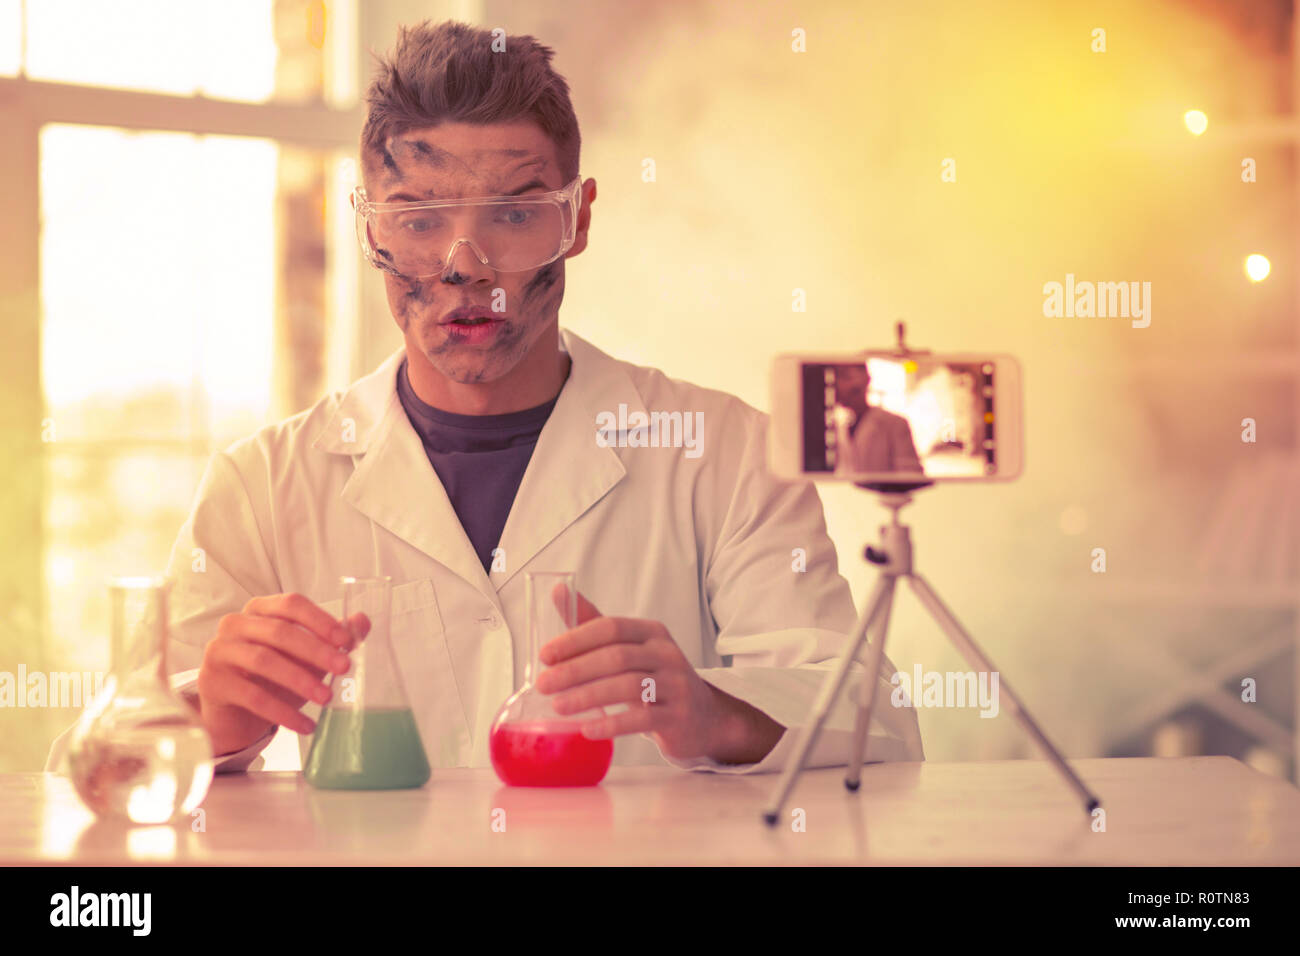 Disappointed blond guy wondering about experiment results - Stock Image